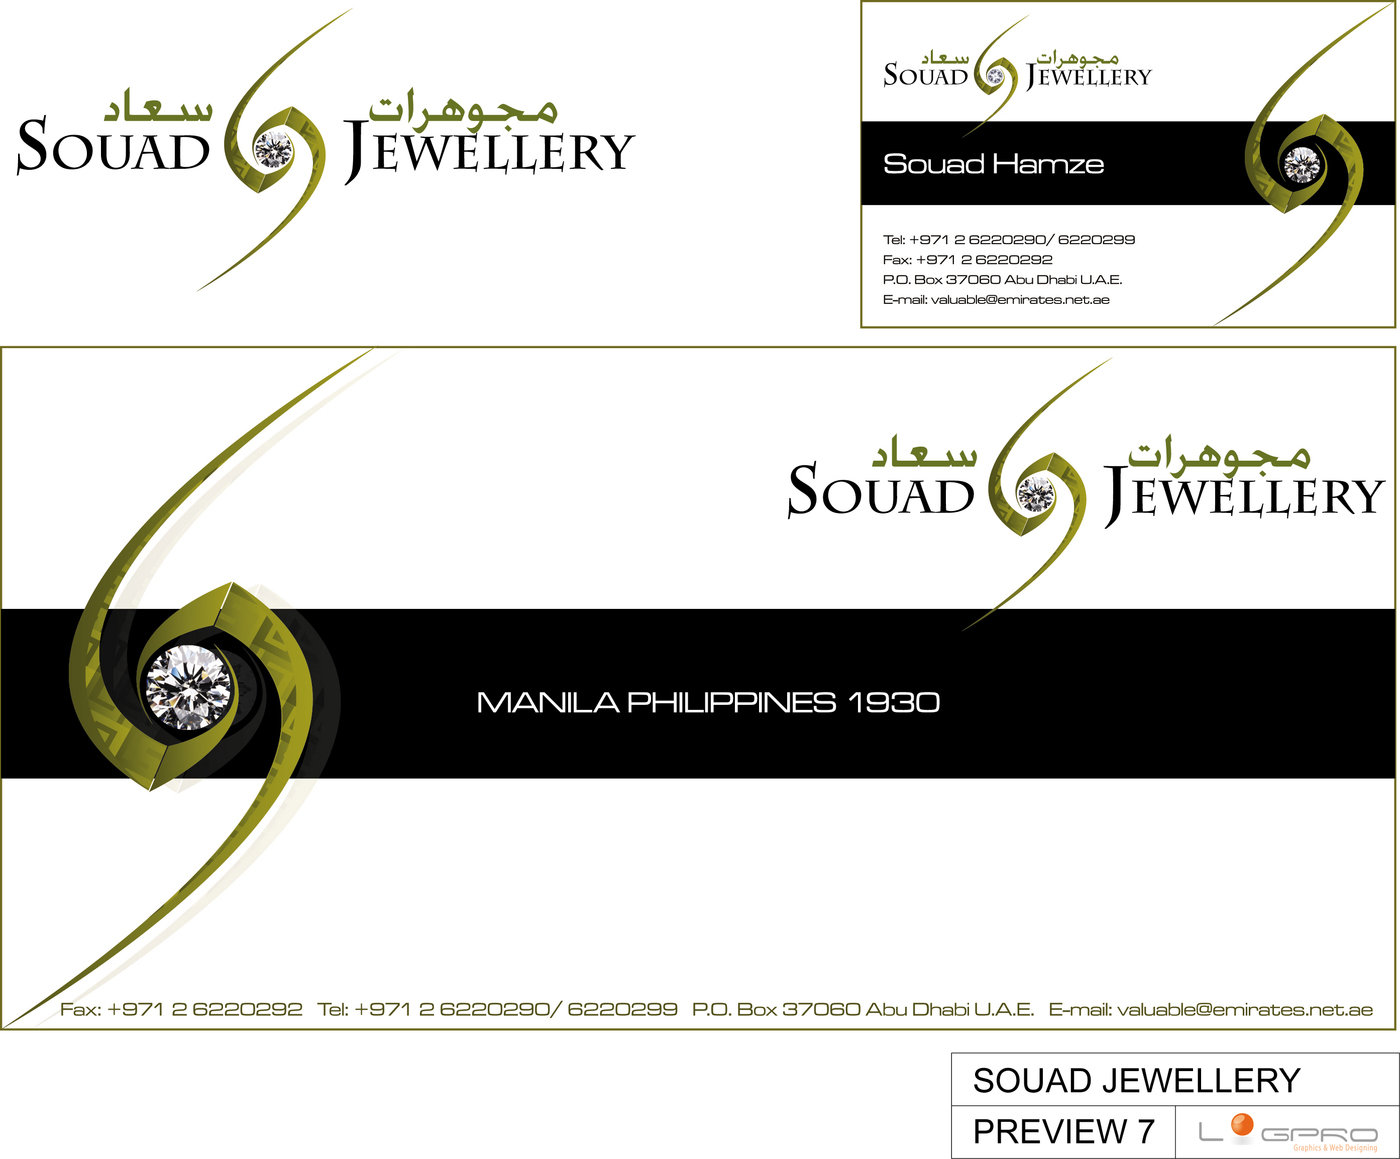 Souad jewellery abu dhabi by rowell perez at coroflot business card and envelope for souad jewellery reheart Image collections